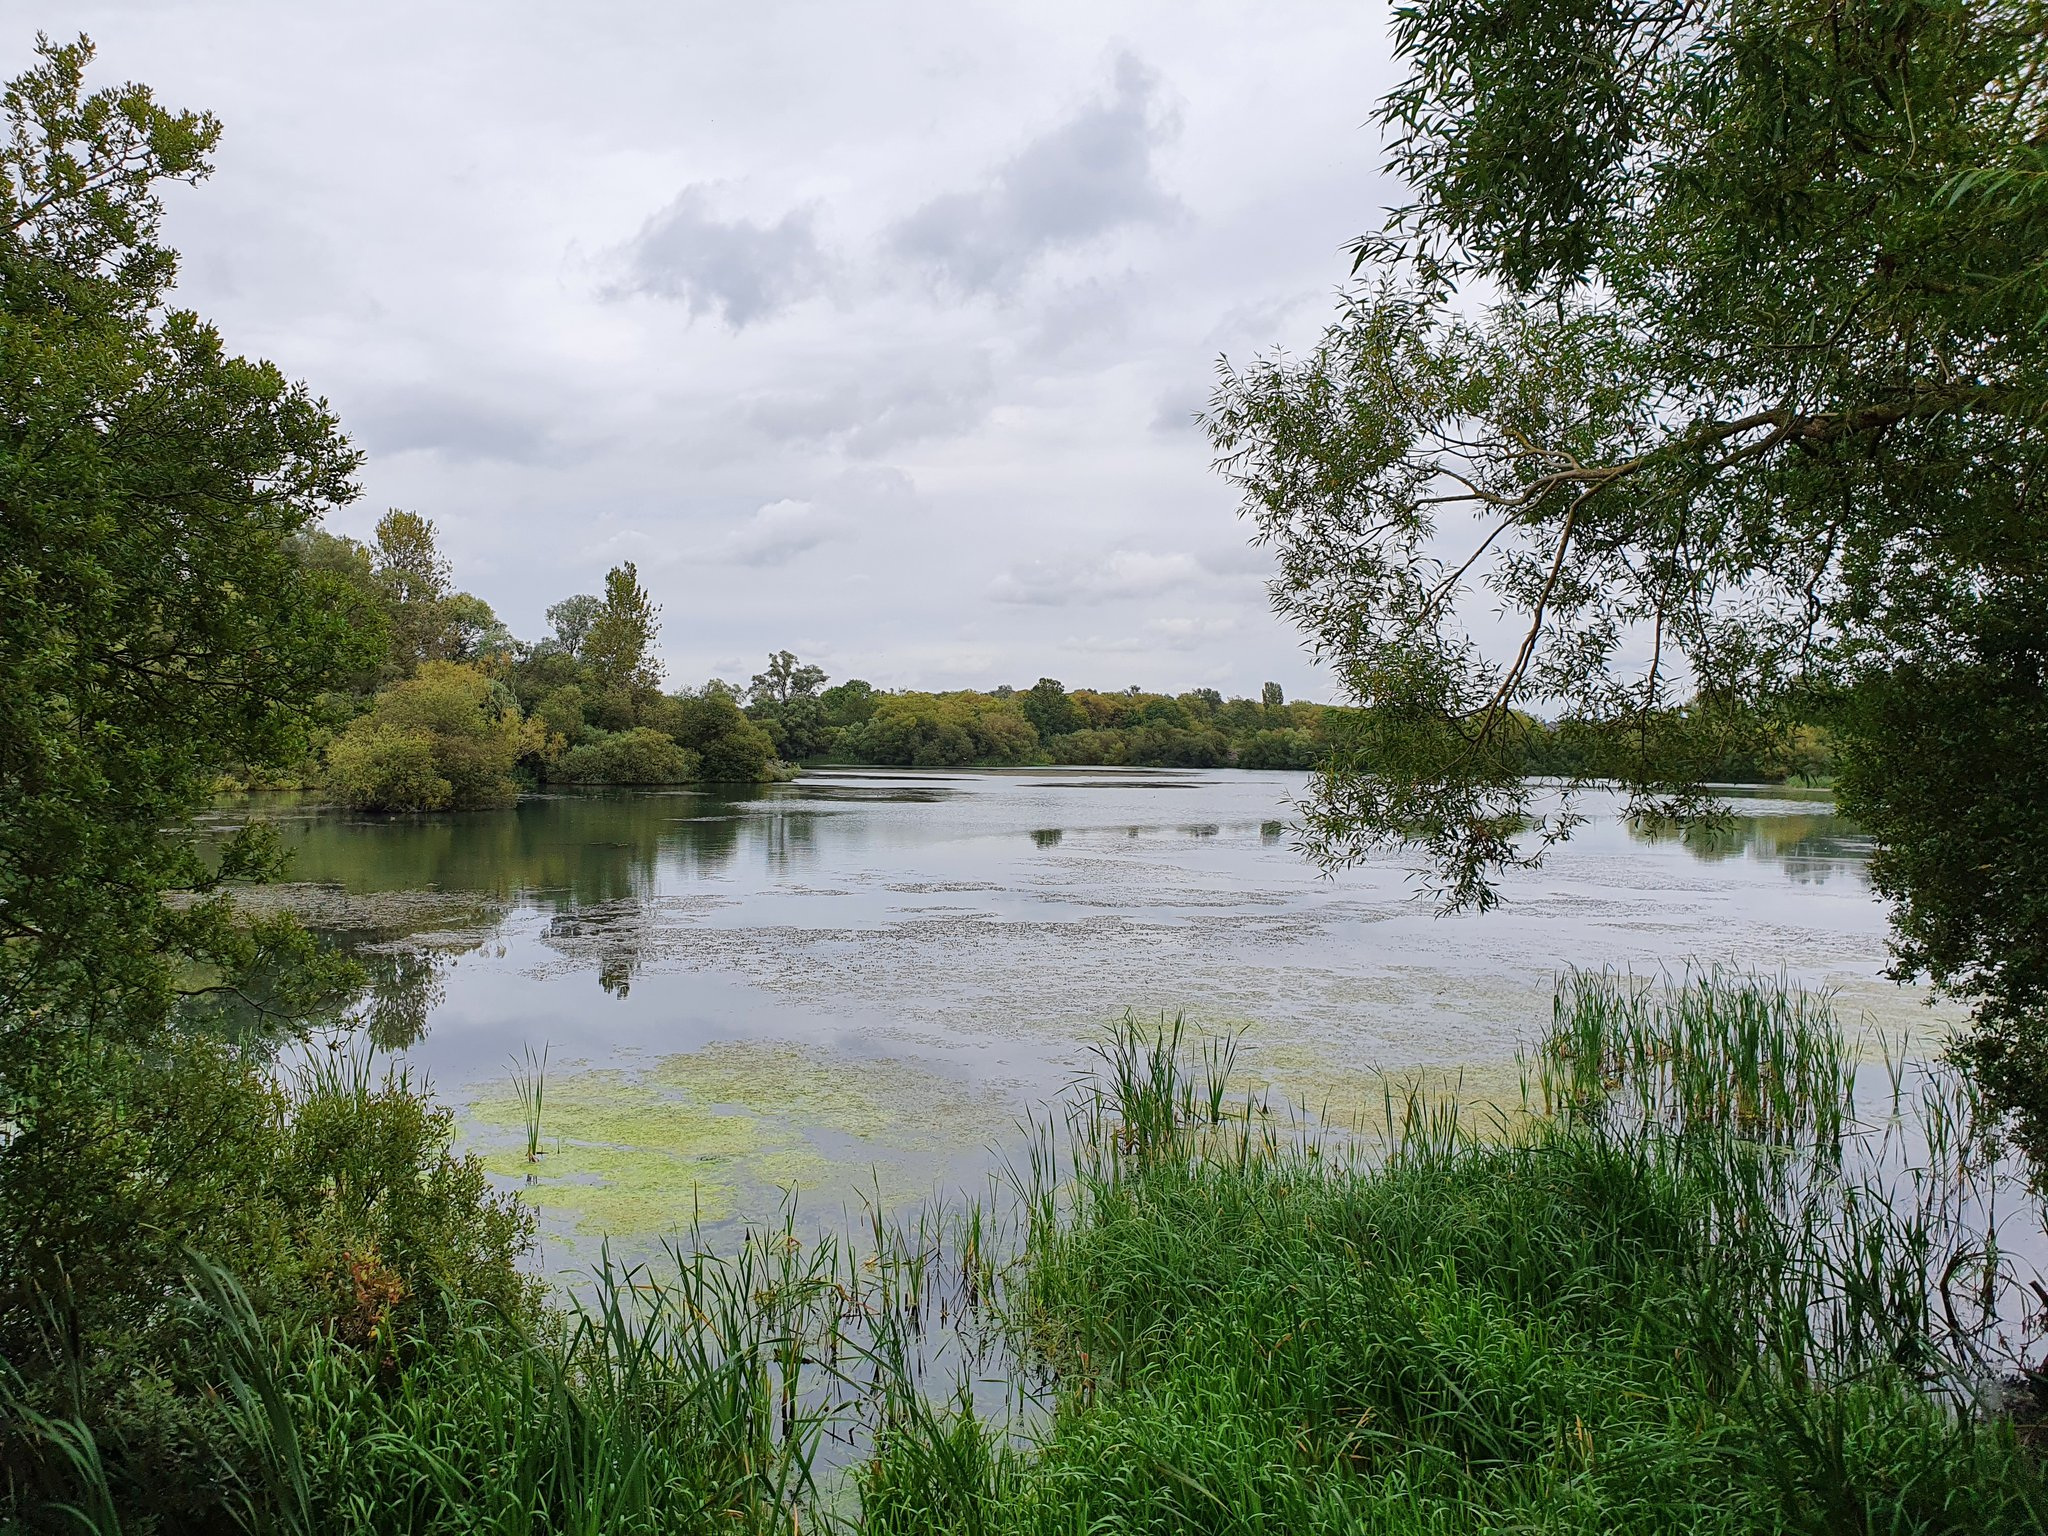 One of the photography challenge's objectives was to capture green, like in this riverside scene